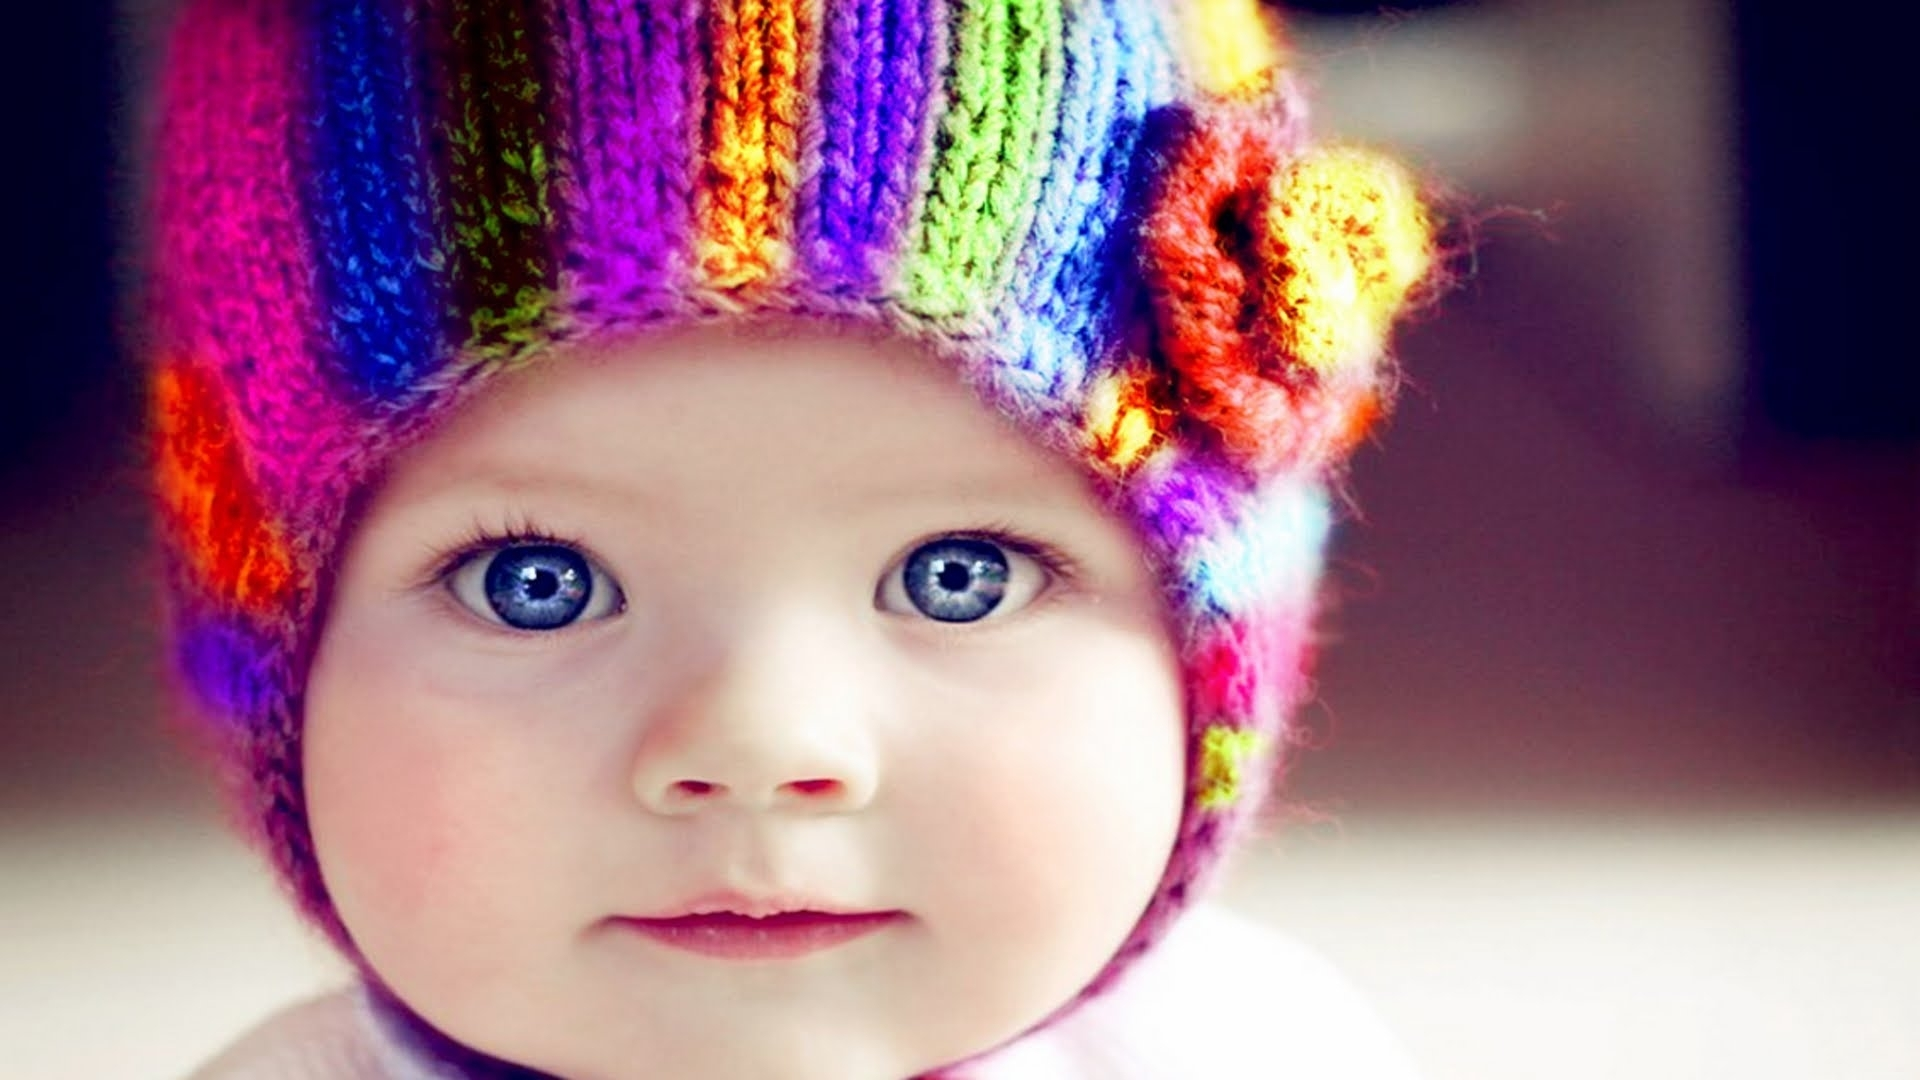 beautiful babies, 100 cuties baby photos to brighten up your day